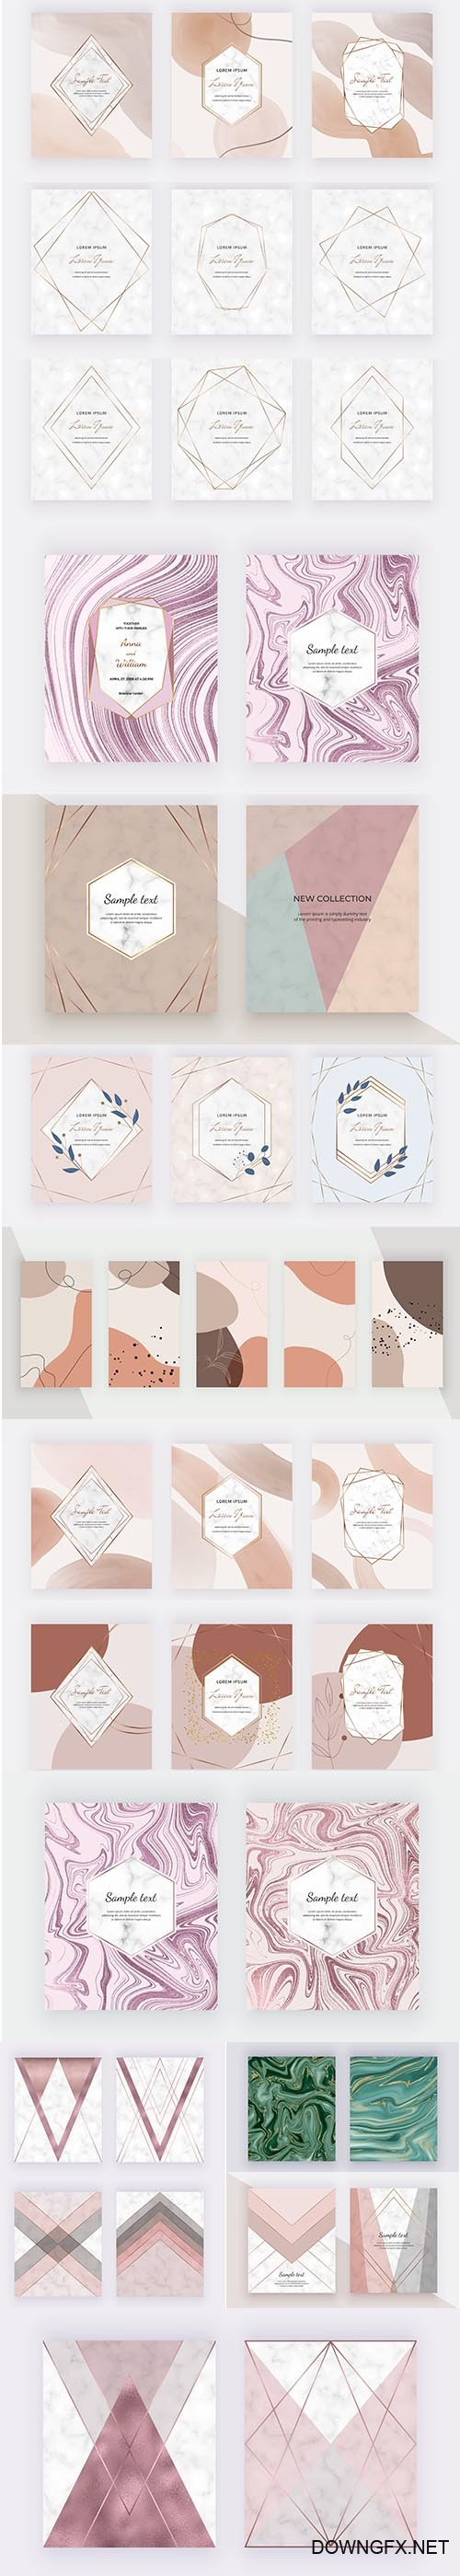 Marble Geometric Design with Pink Grey Triangular Rose Gold Foil Texture